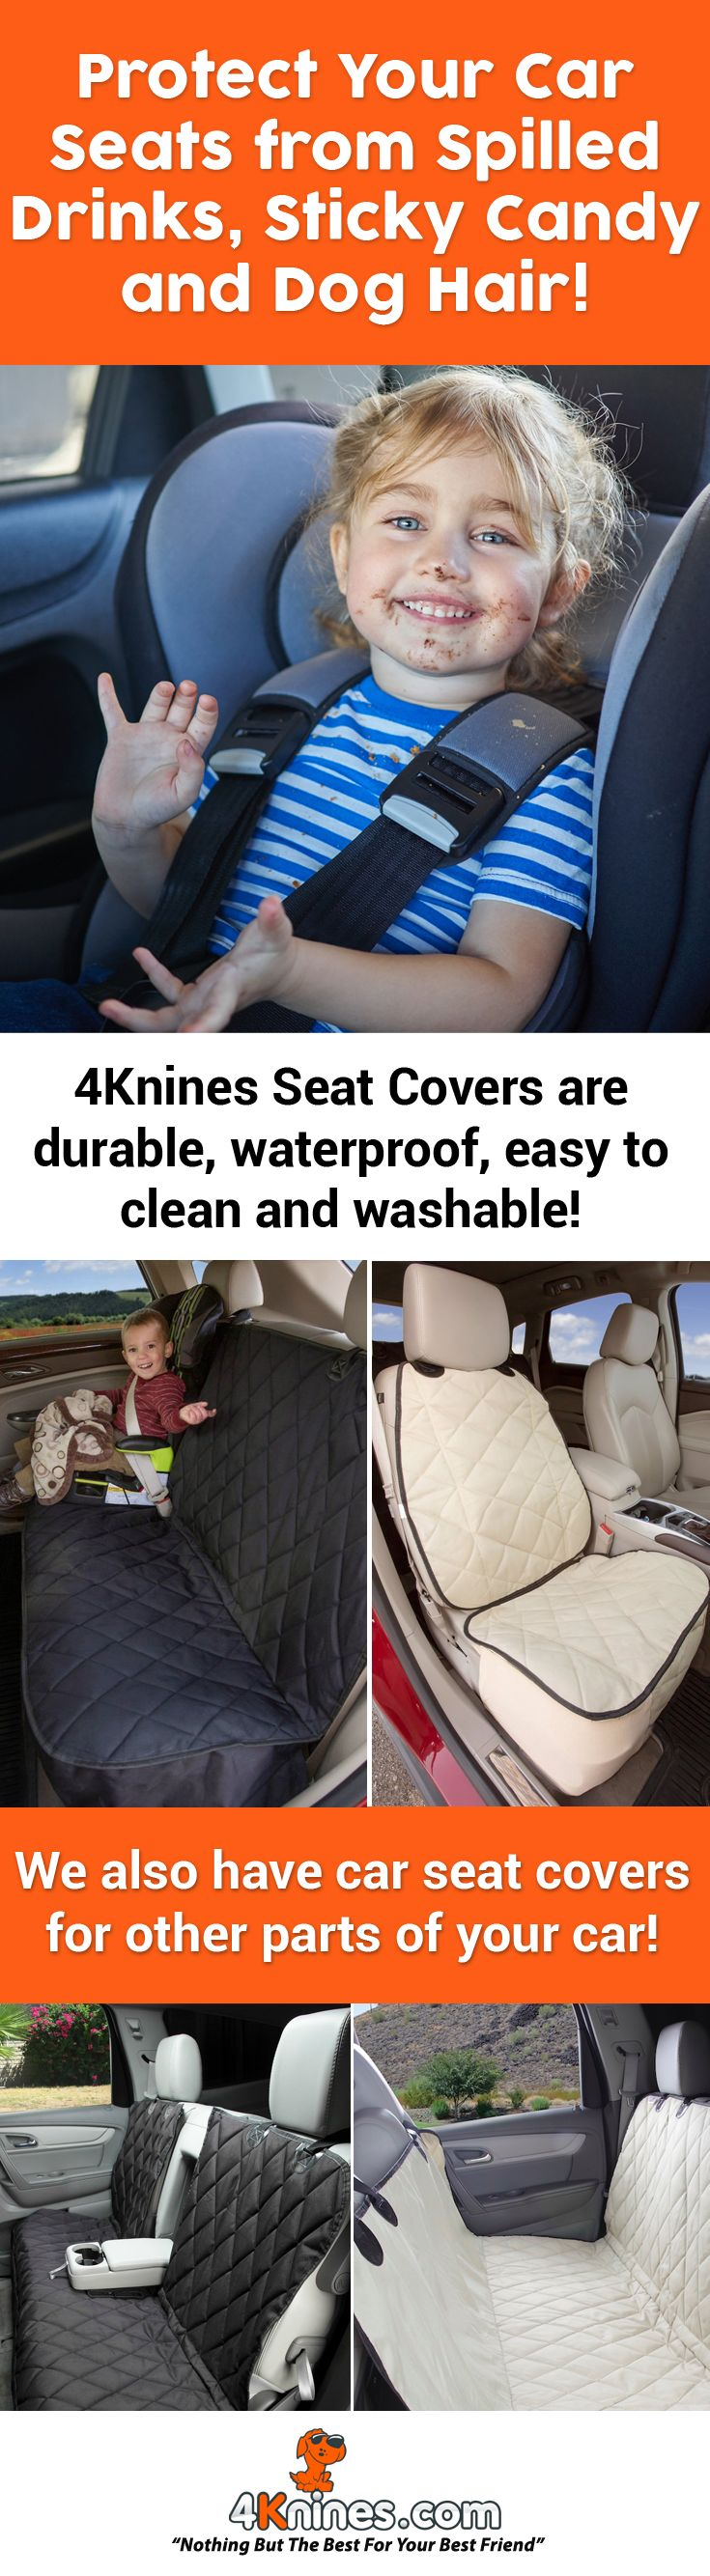 Protect your car seats from messy kids and dirty dogs with premium 4Knines Car Seat Covers! The non-slip backing of 4Knines Car Seat Covers ensures the spills and dirt stay on the cover and not on your car seat: http://4knines.com/collections/all